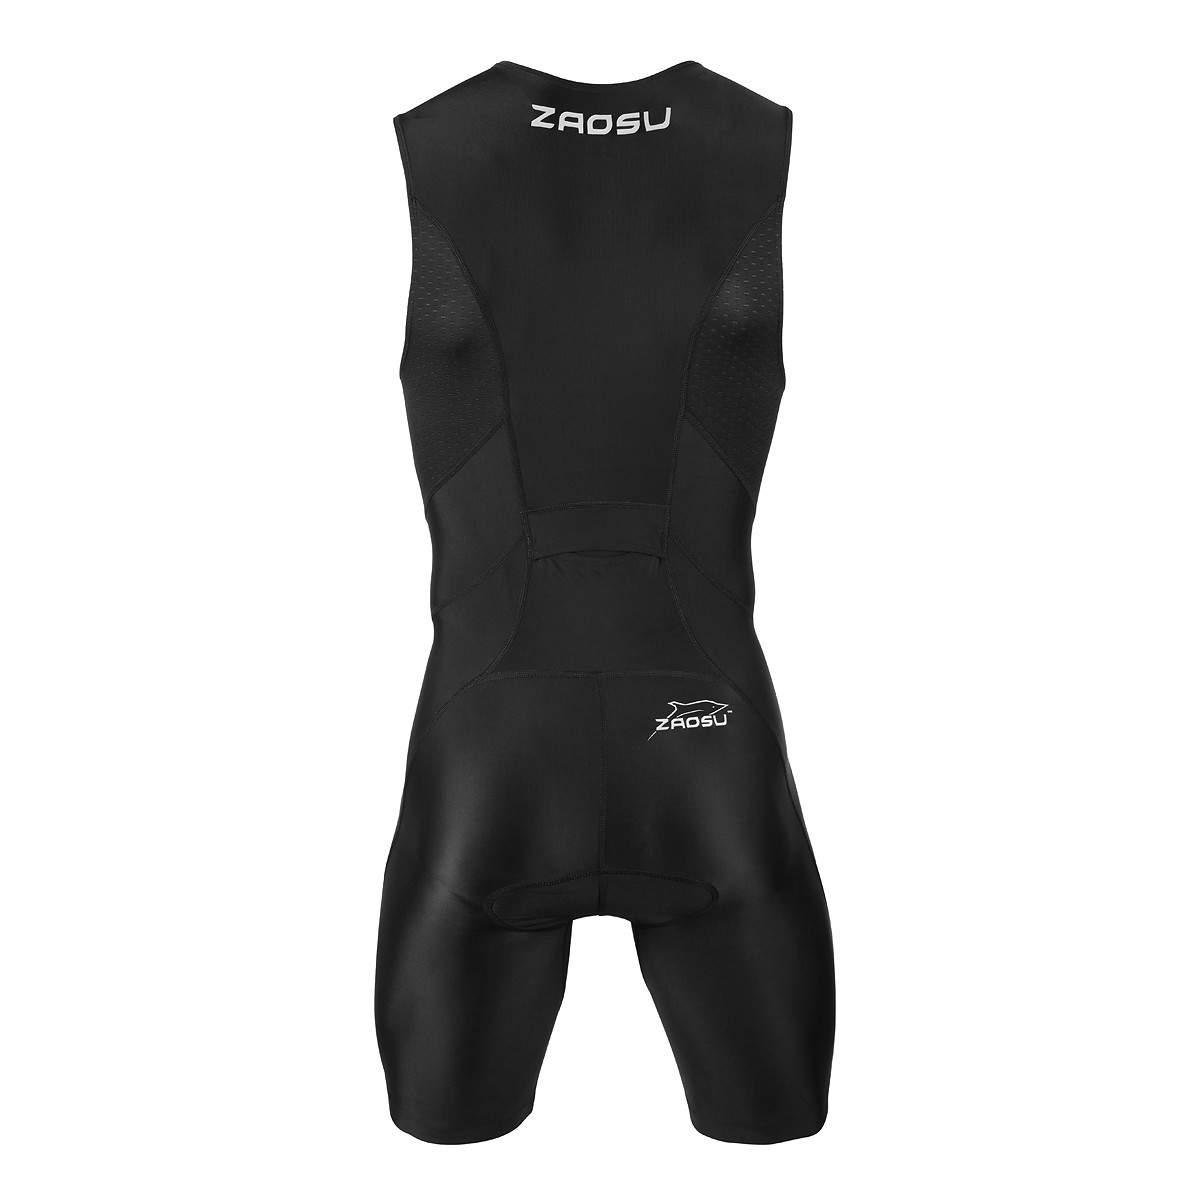 ZAOSU Z-Revolution Trisuit Men